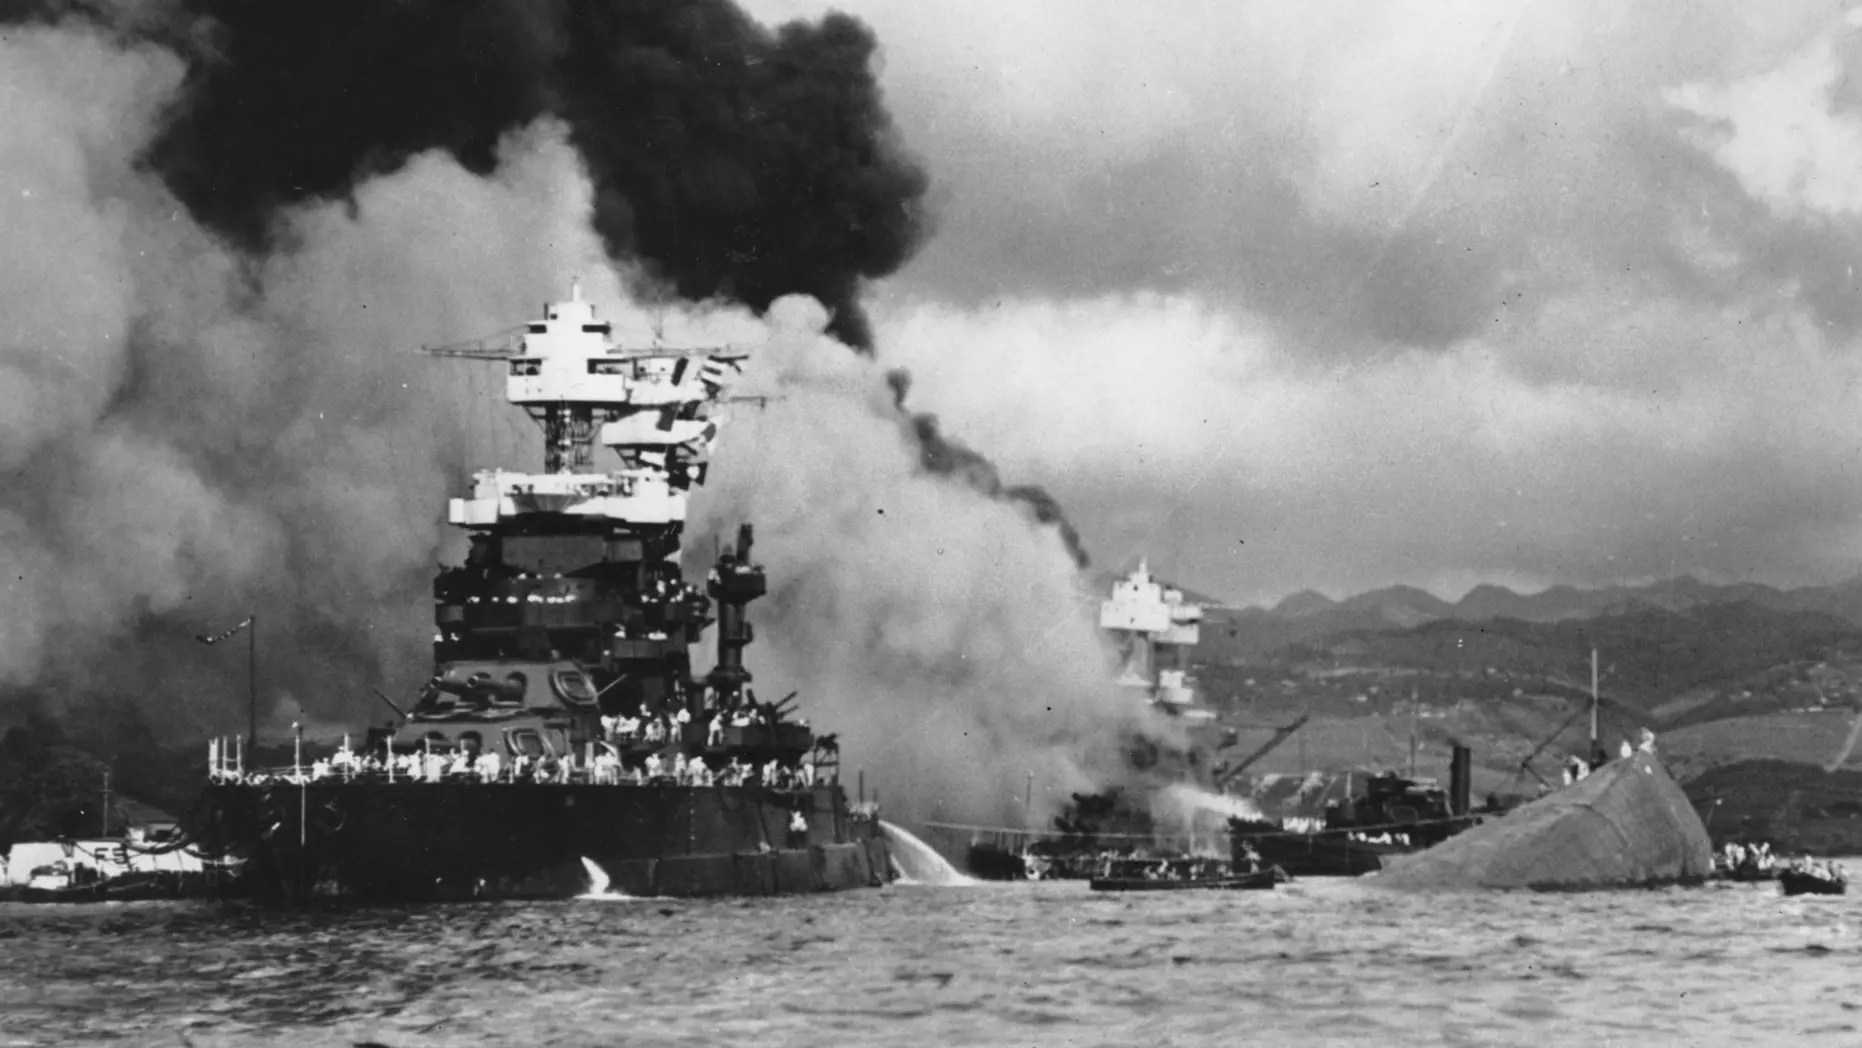 In this Dec. 7, 1941 file photo, part of the hull of the capsized USS Oklahoma is seen at right as the battleship USS West Virginia, center, begins to sink after suffering heavy damage, while the USS Maryland, left, is still afloat in Pearl Harbor, Oahu, Hawaii.